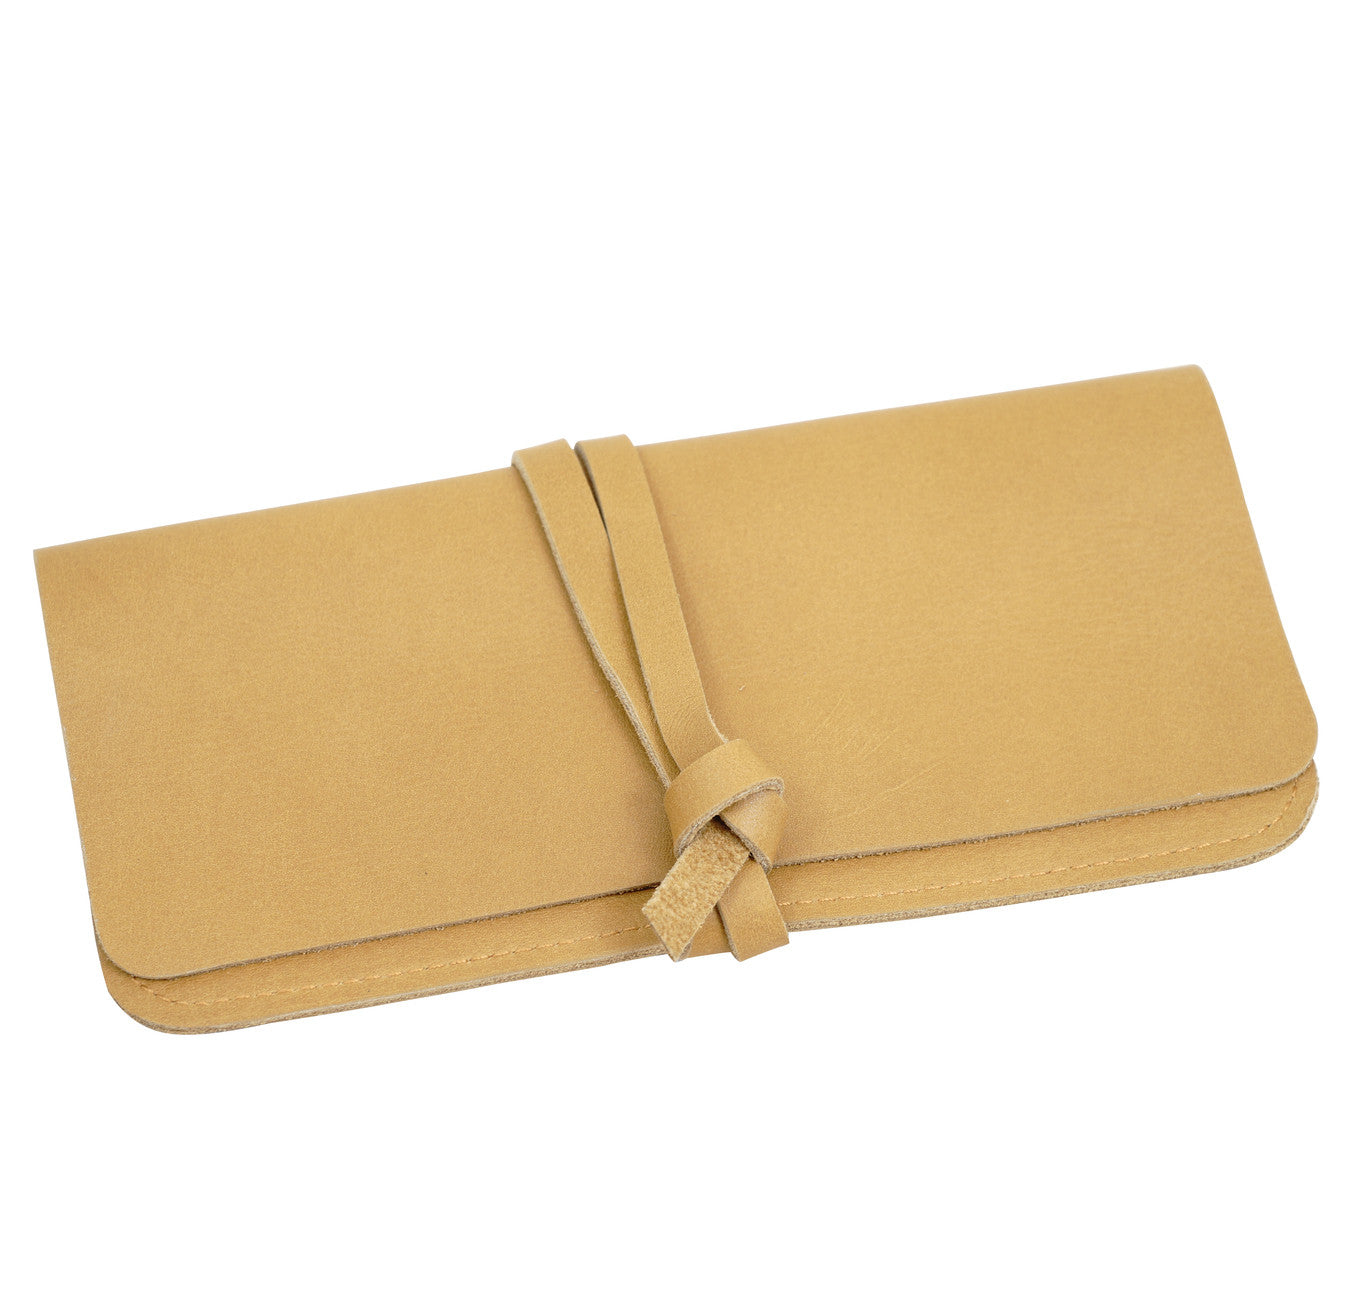 caramel pencil case purse - WE DASH LOVE